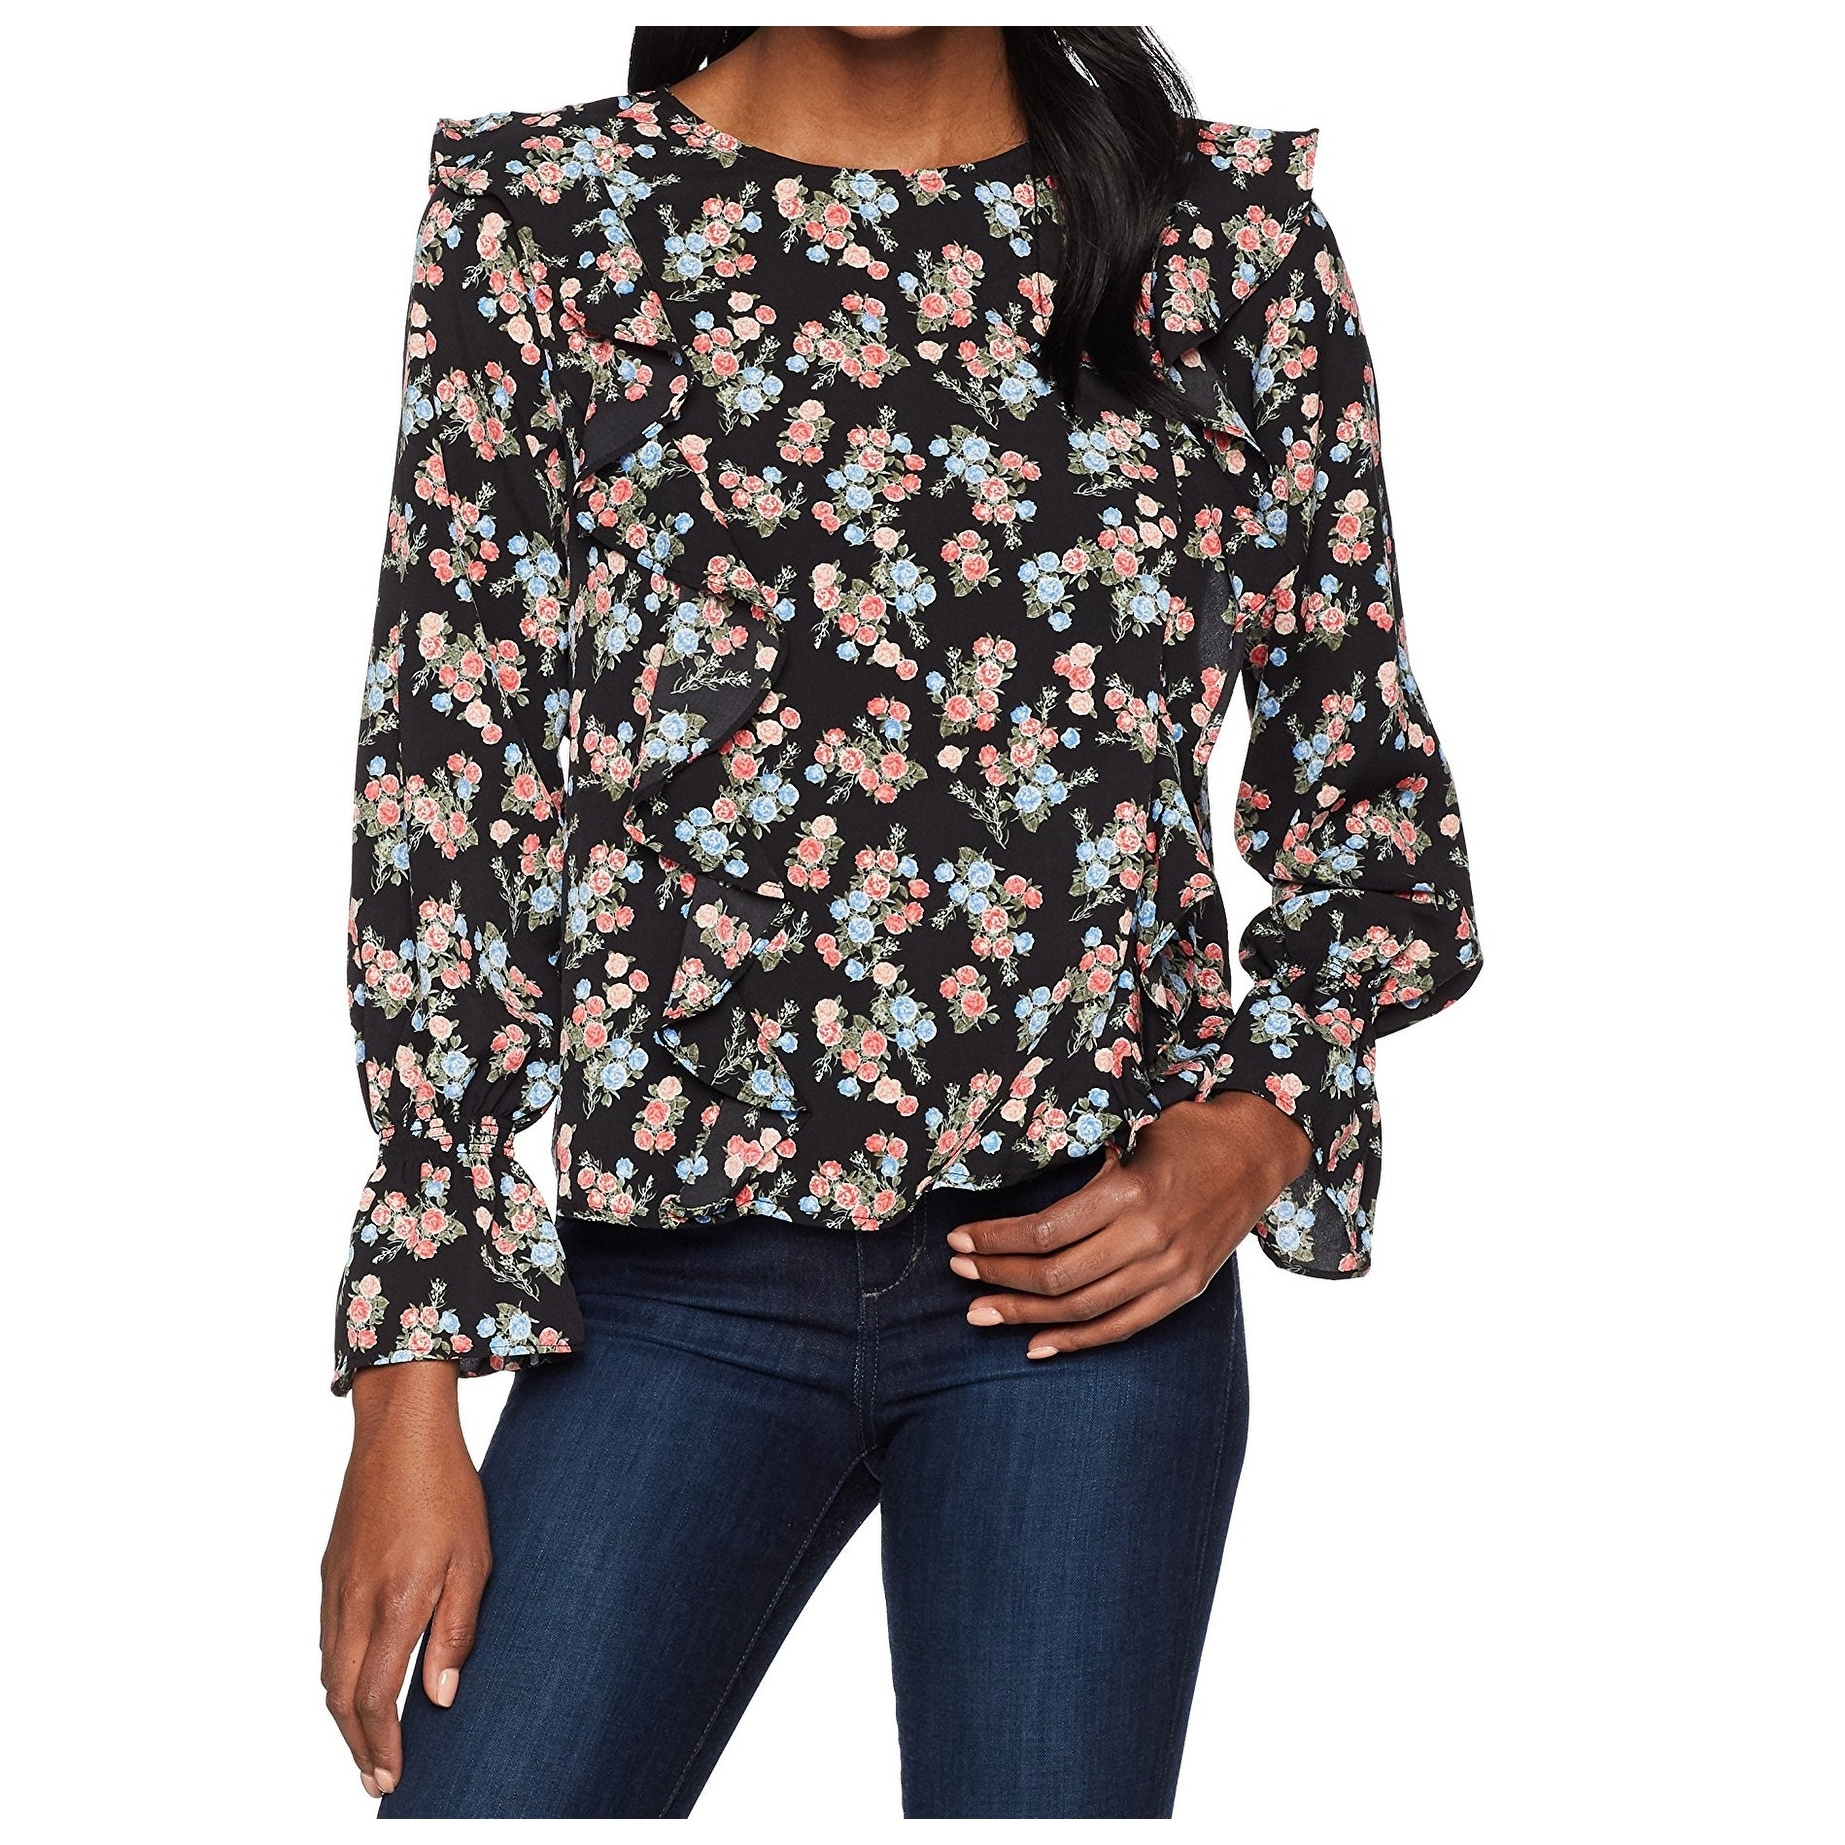 56dee7b76d549 kensie Women's Clothing Sale   Shop our Best Clothing & Shoes Deals Online  at Overstock